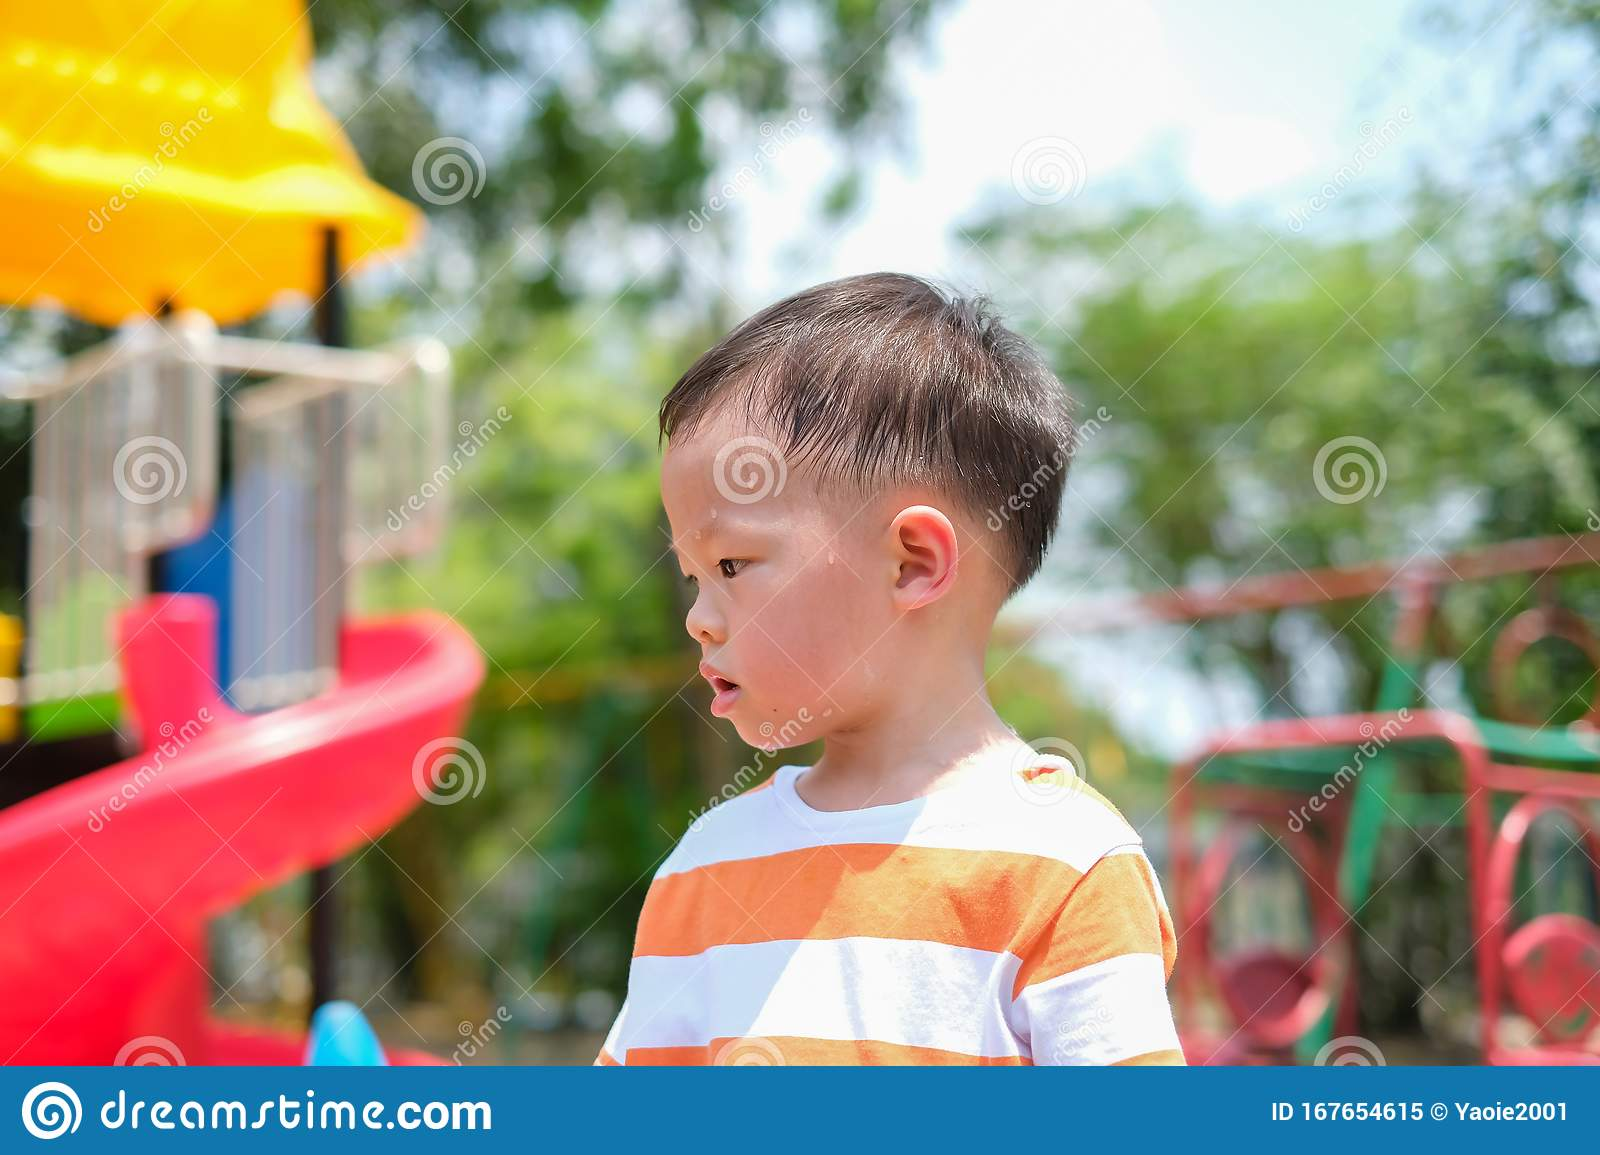 Cute Little Asian 2 - 3 Years Old Toddler Boy Child ...